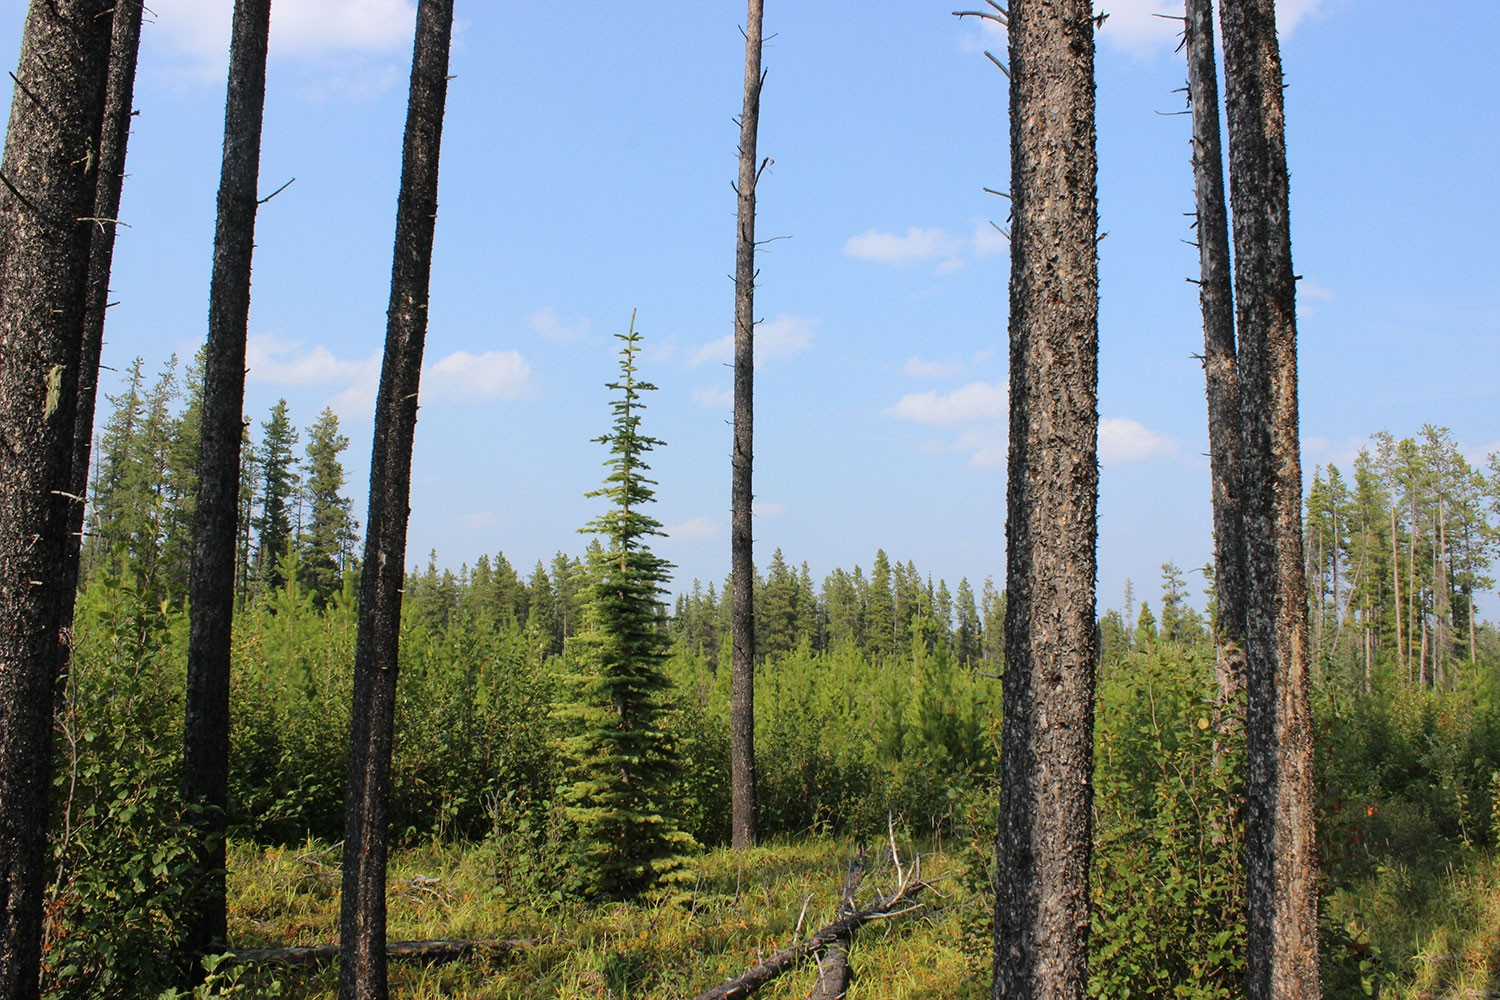 A regenerating pine forest